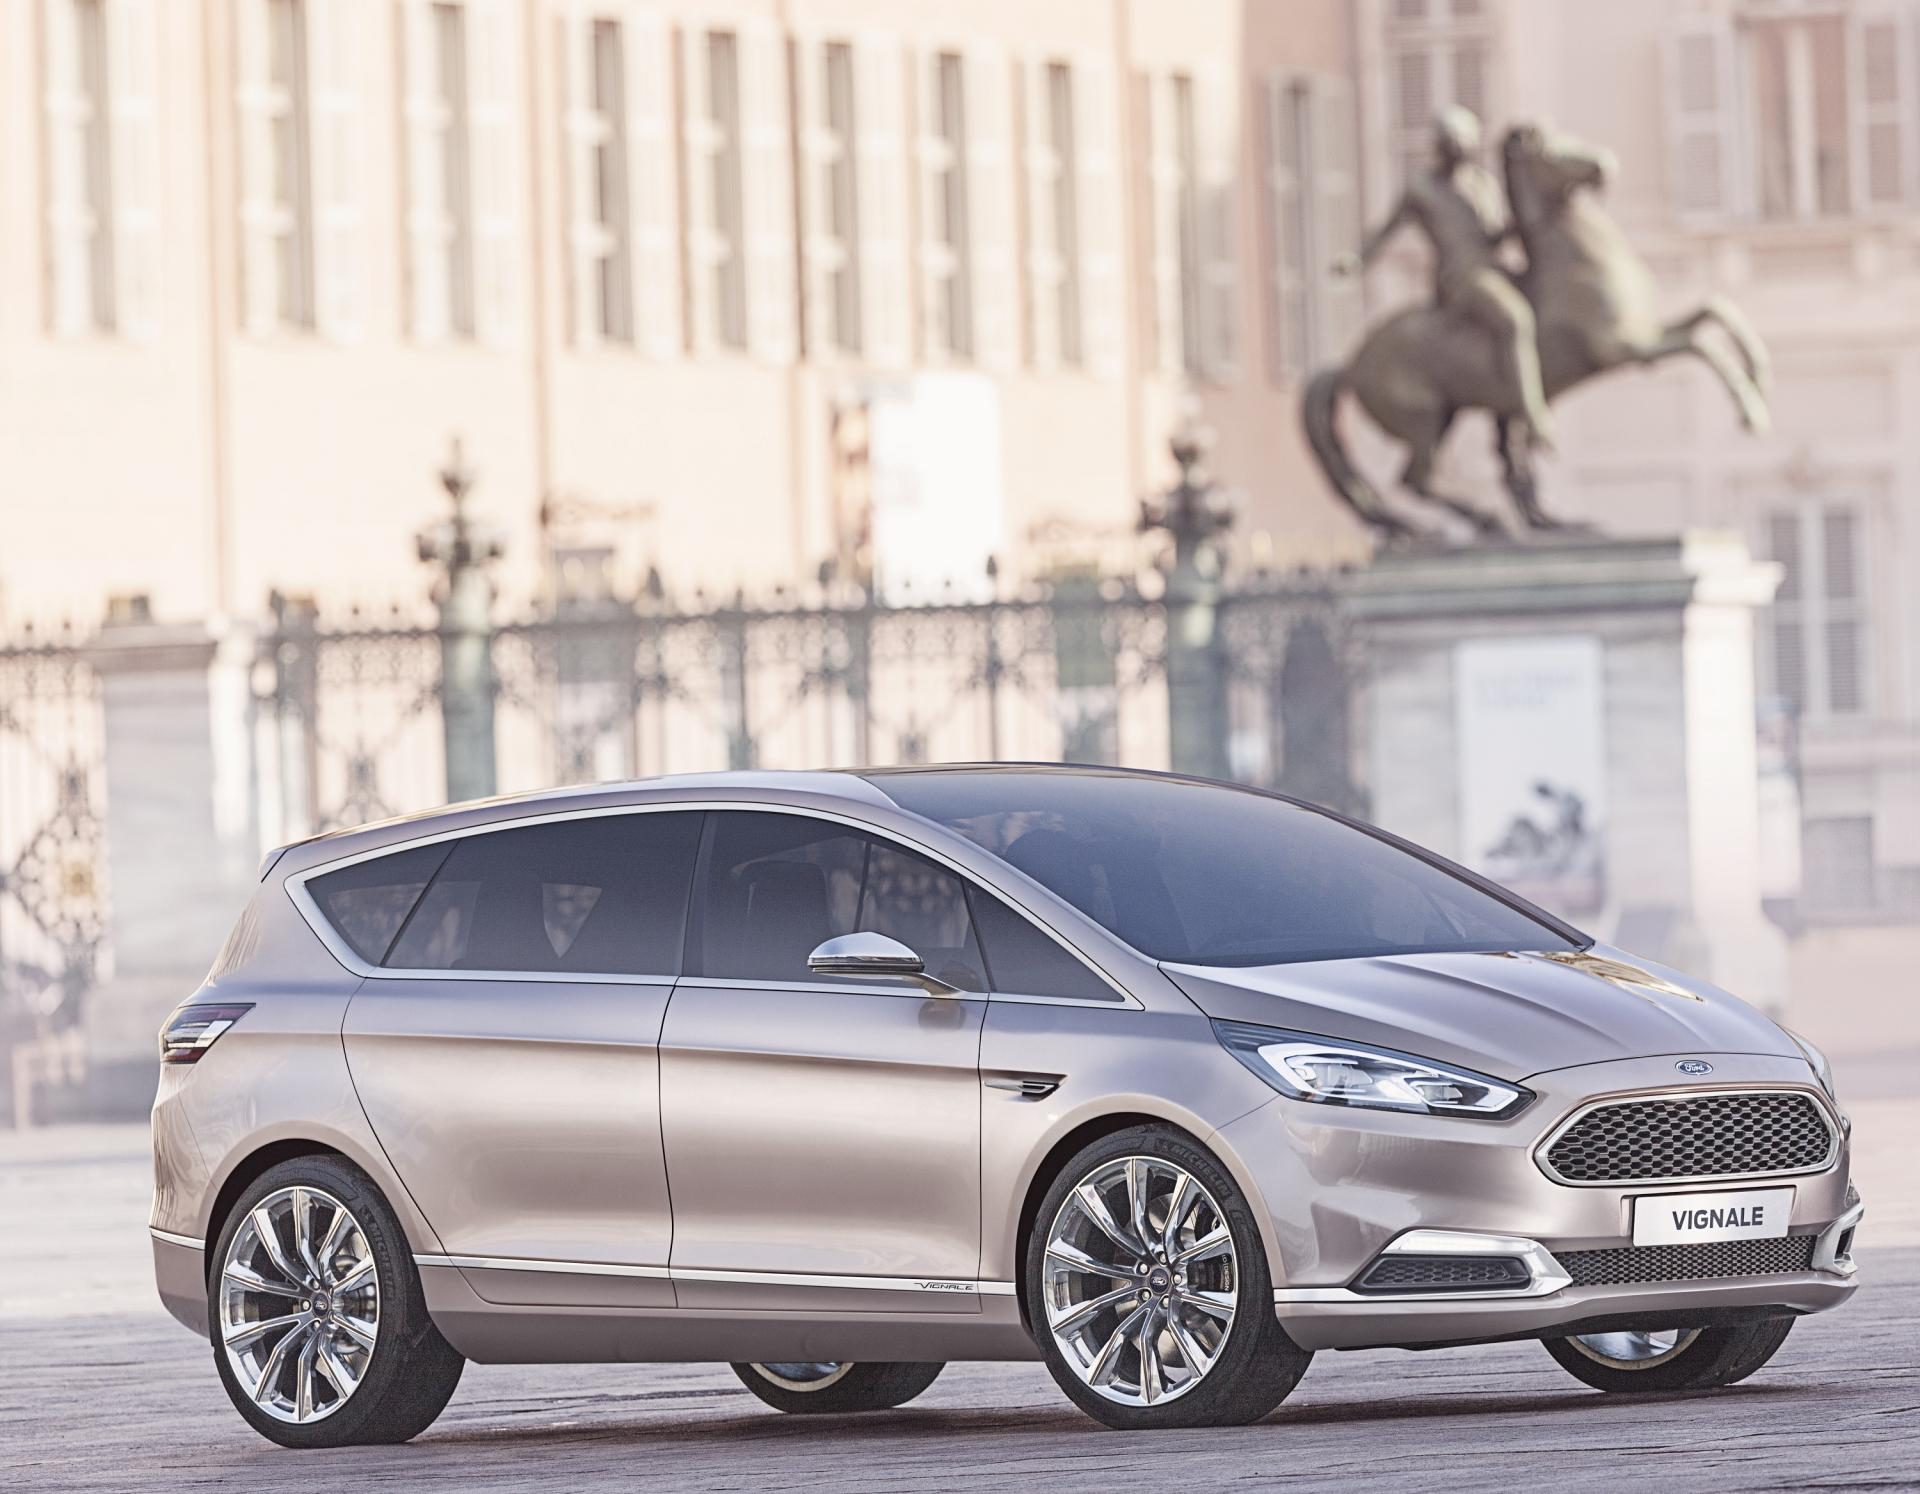 2014 ford s max vignale concept news and information research and history. Black Bedroom Furniture Sets. Home Design Ideas